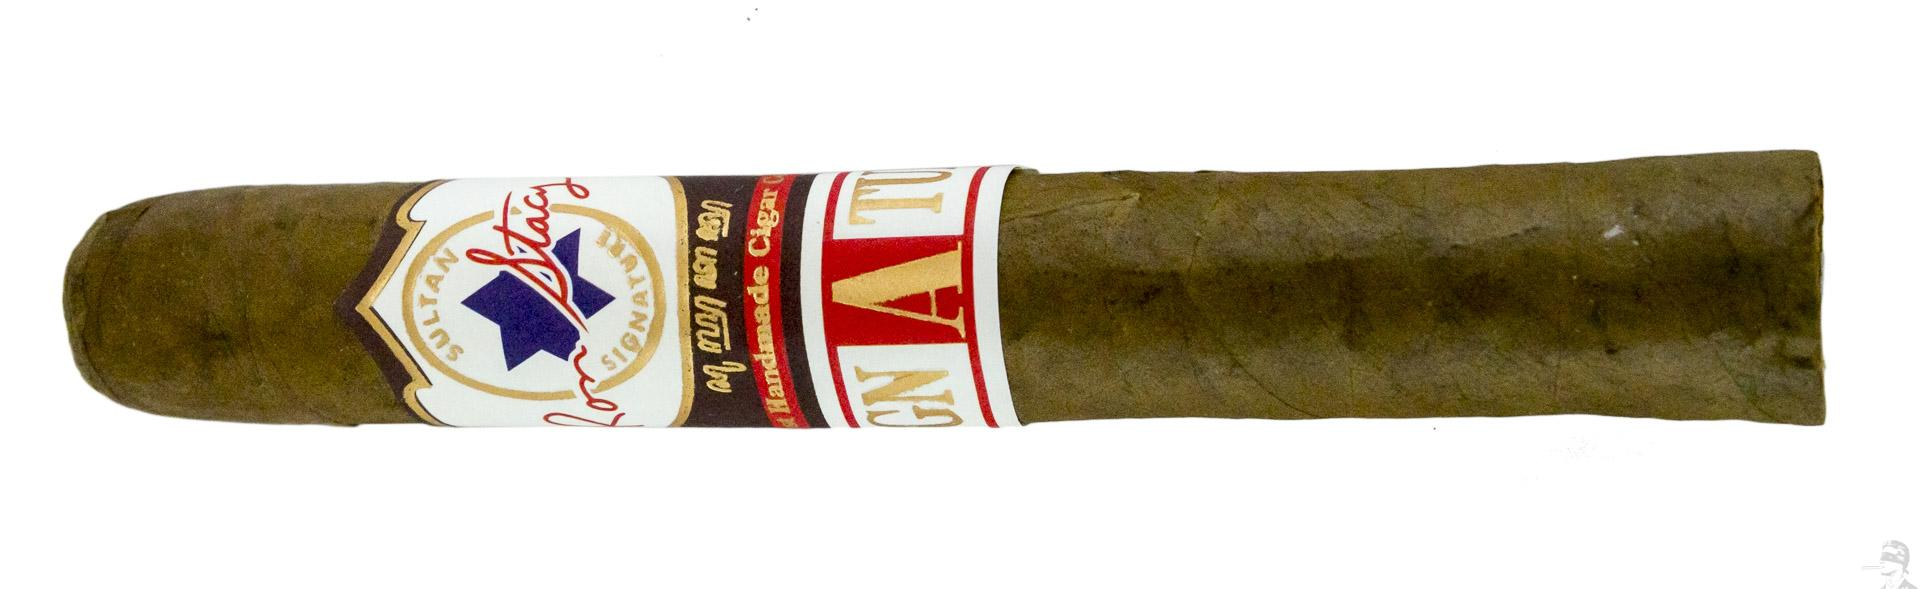 Blind Cigar Review: Sultan | Ron Stacy Signature Corona